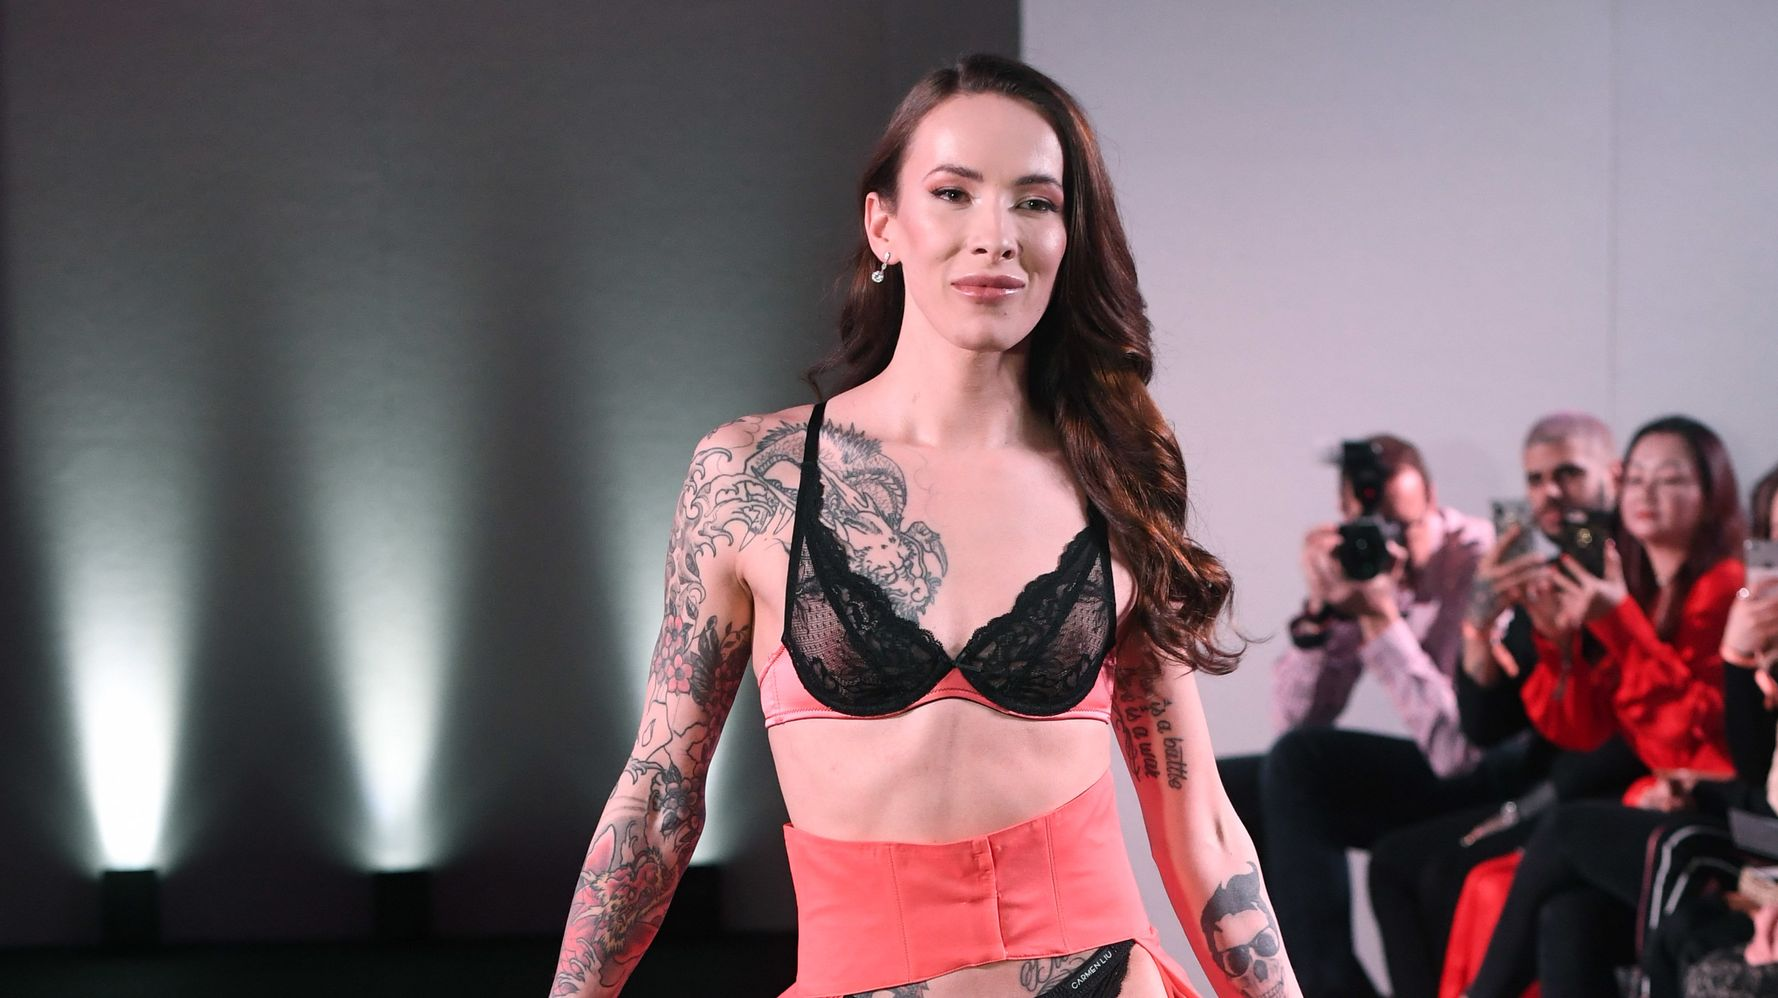 Britains First Transgender Lingerie Brand Is Here To Make All